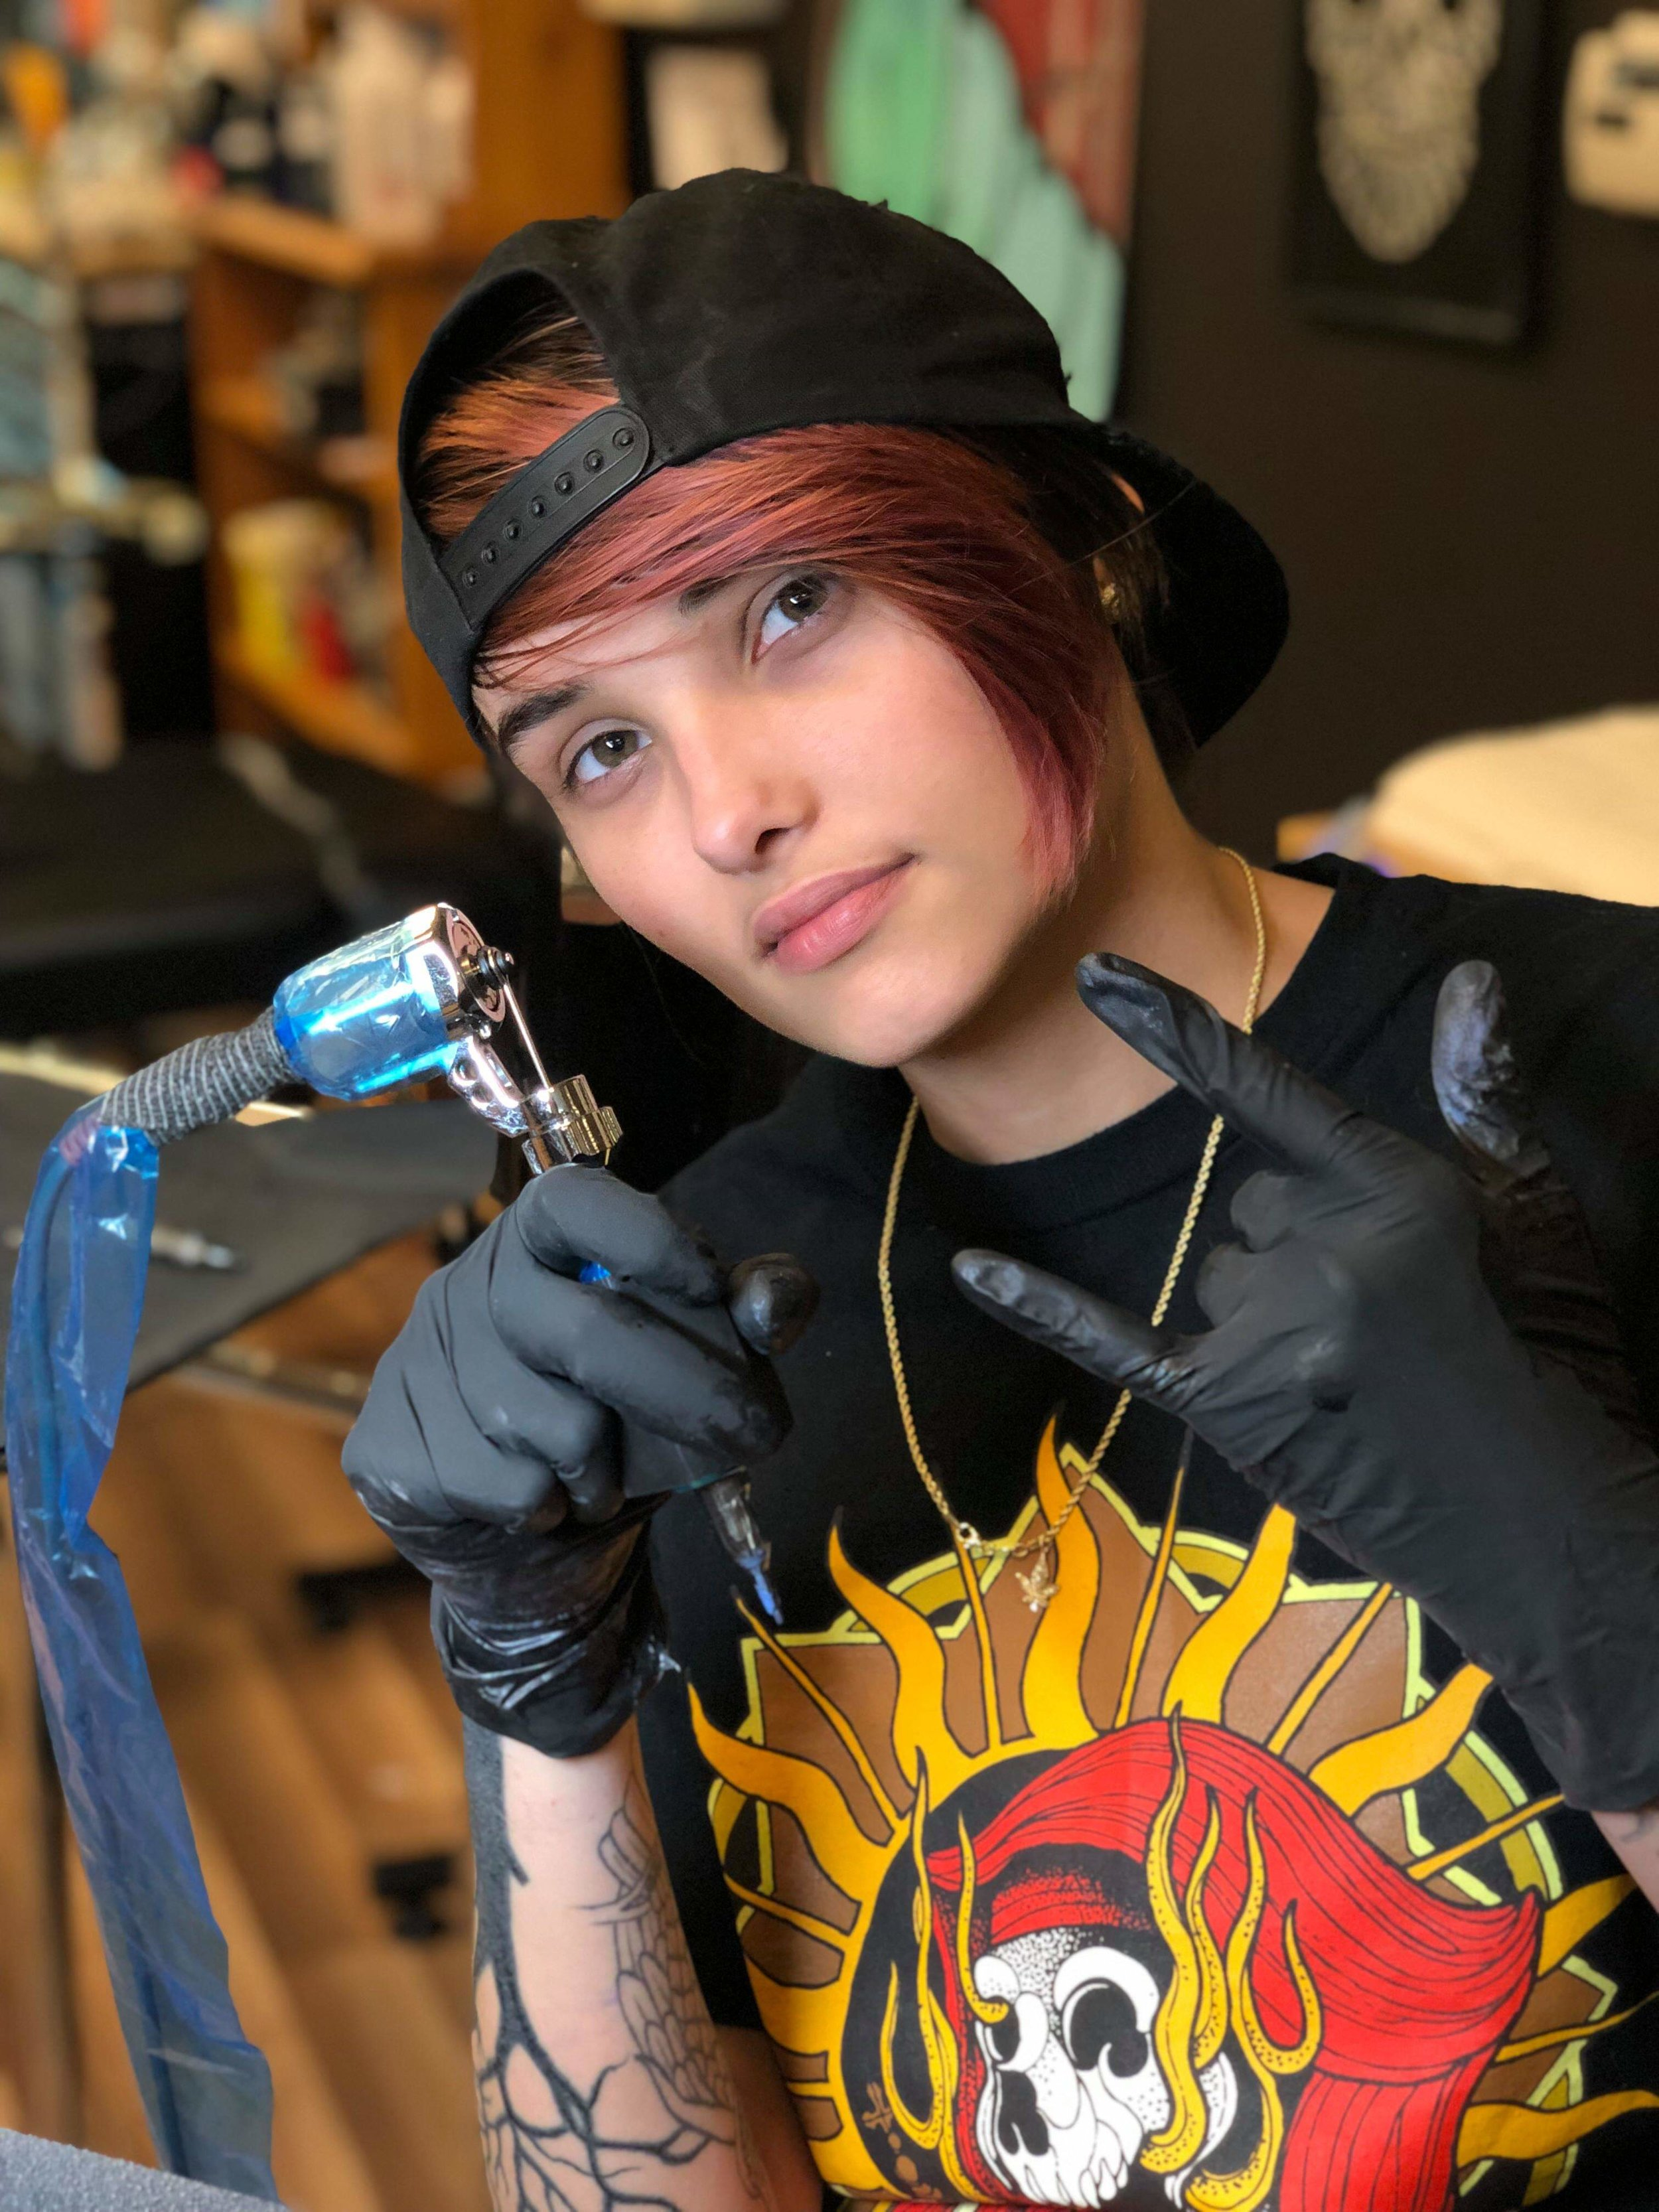 Bri Johnson - Bri tattoos in Arizona. She enjoys doing all types of tattoo styles. Bri likes to create custom designs for her clients that match their personalities. Her passion is tattooing. Click her photo to check out her work!